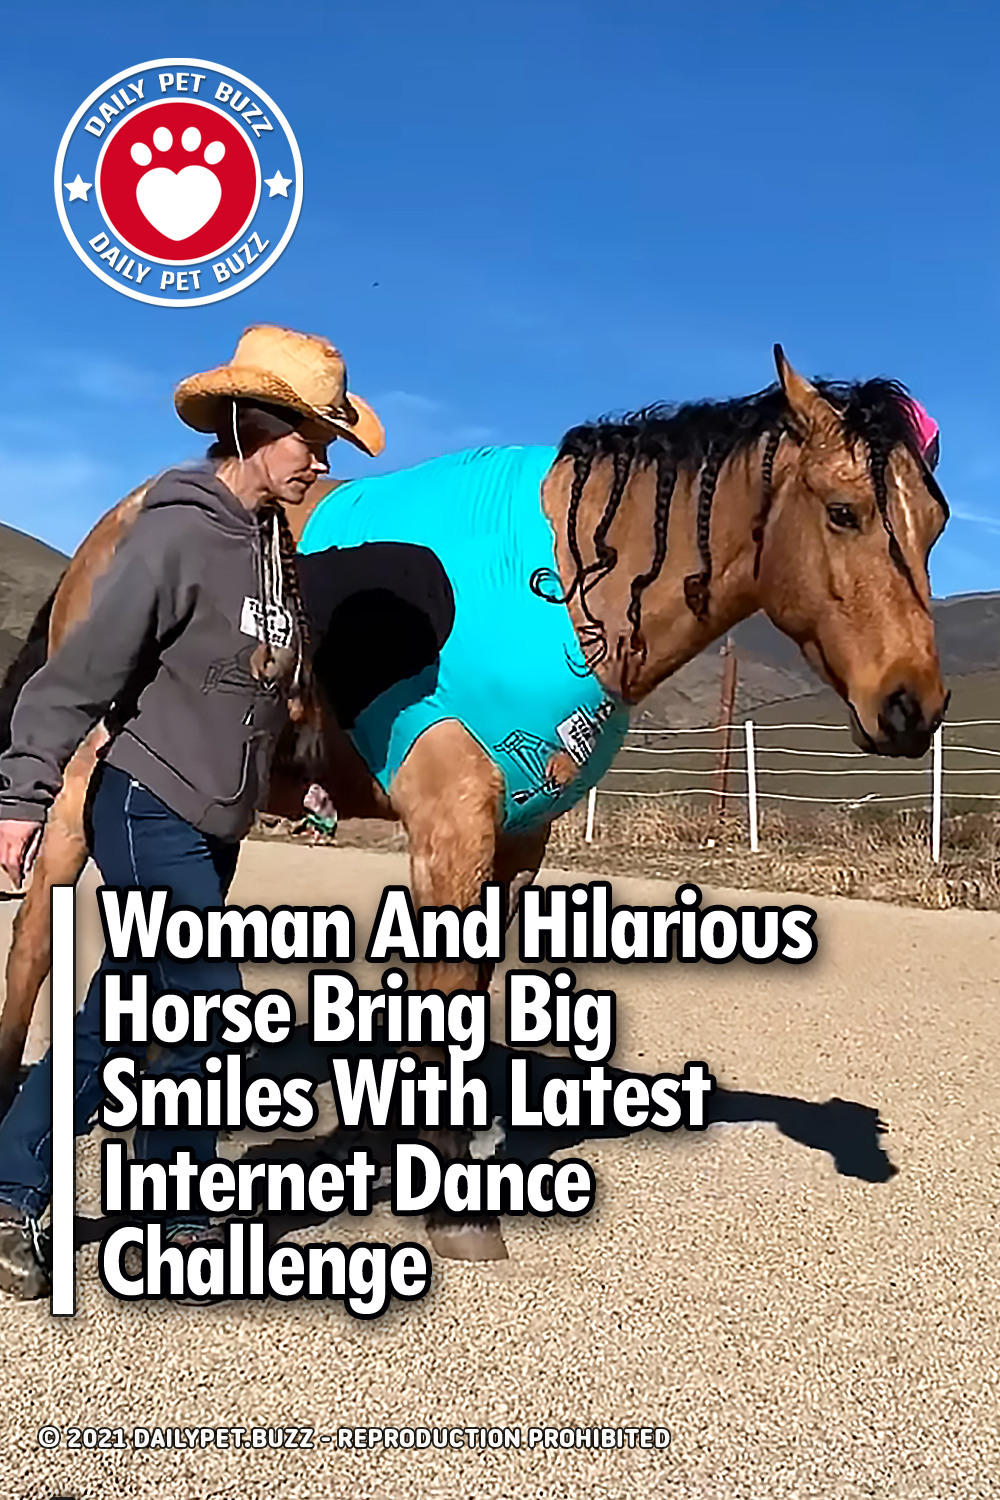 Woman And Hilarious Horse Bring Big Smiles With Latest Internet Dance Challenge